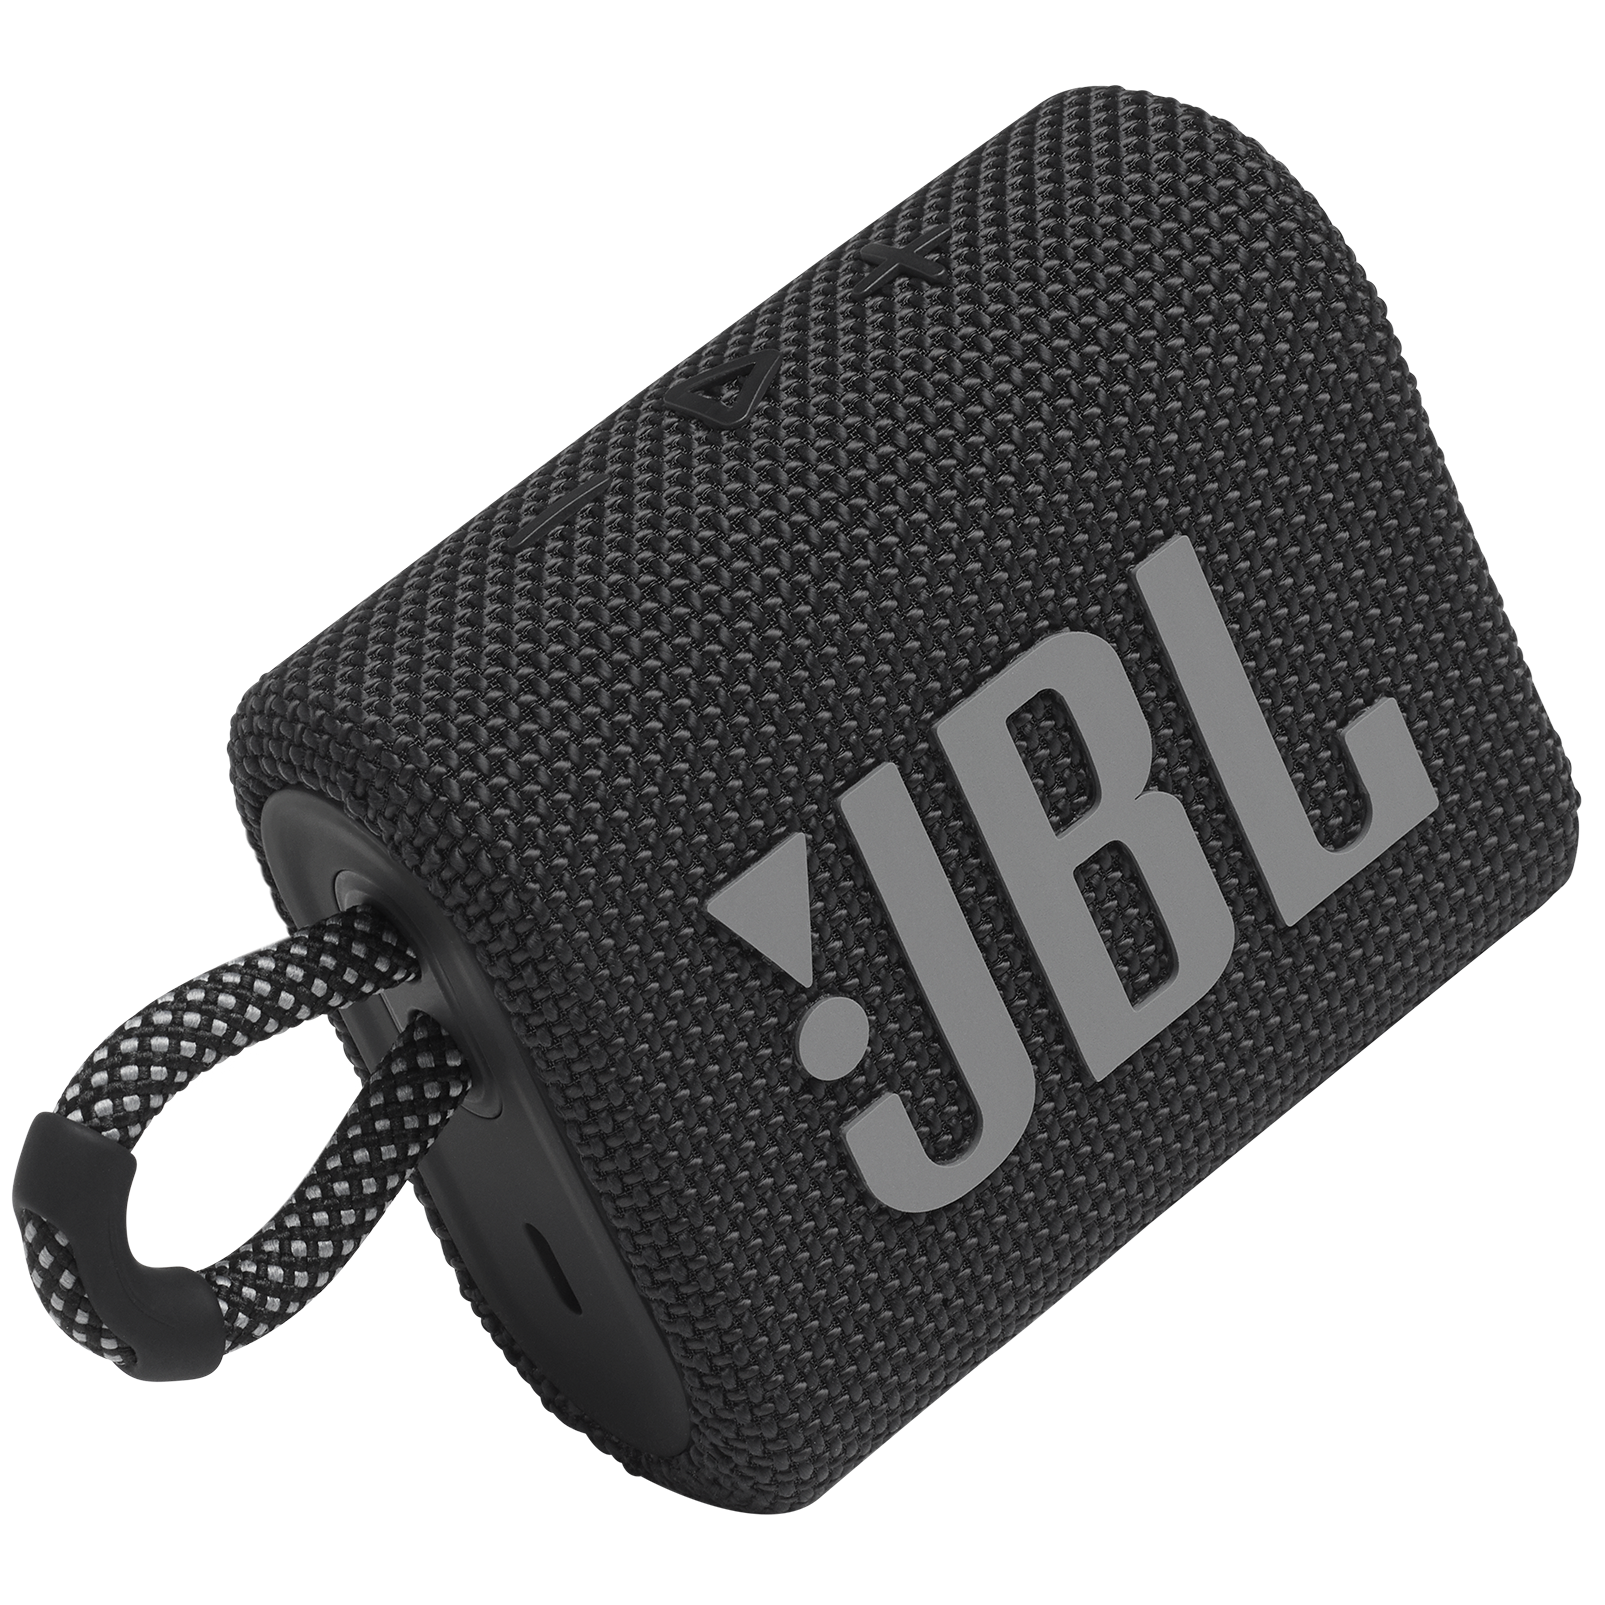 JBL GO 3 - Black - Portable Waterproof Speaker - Detailshot 1